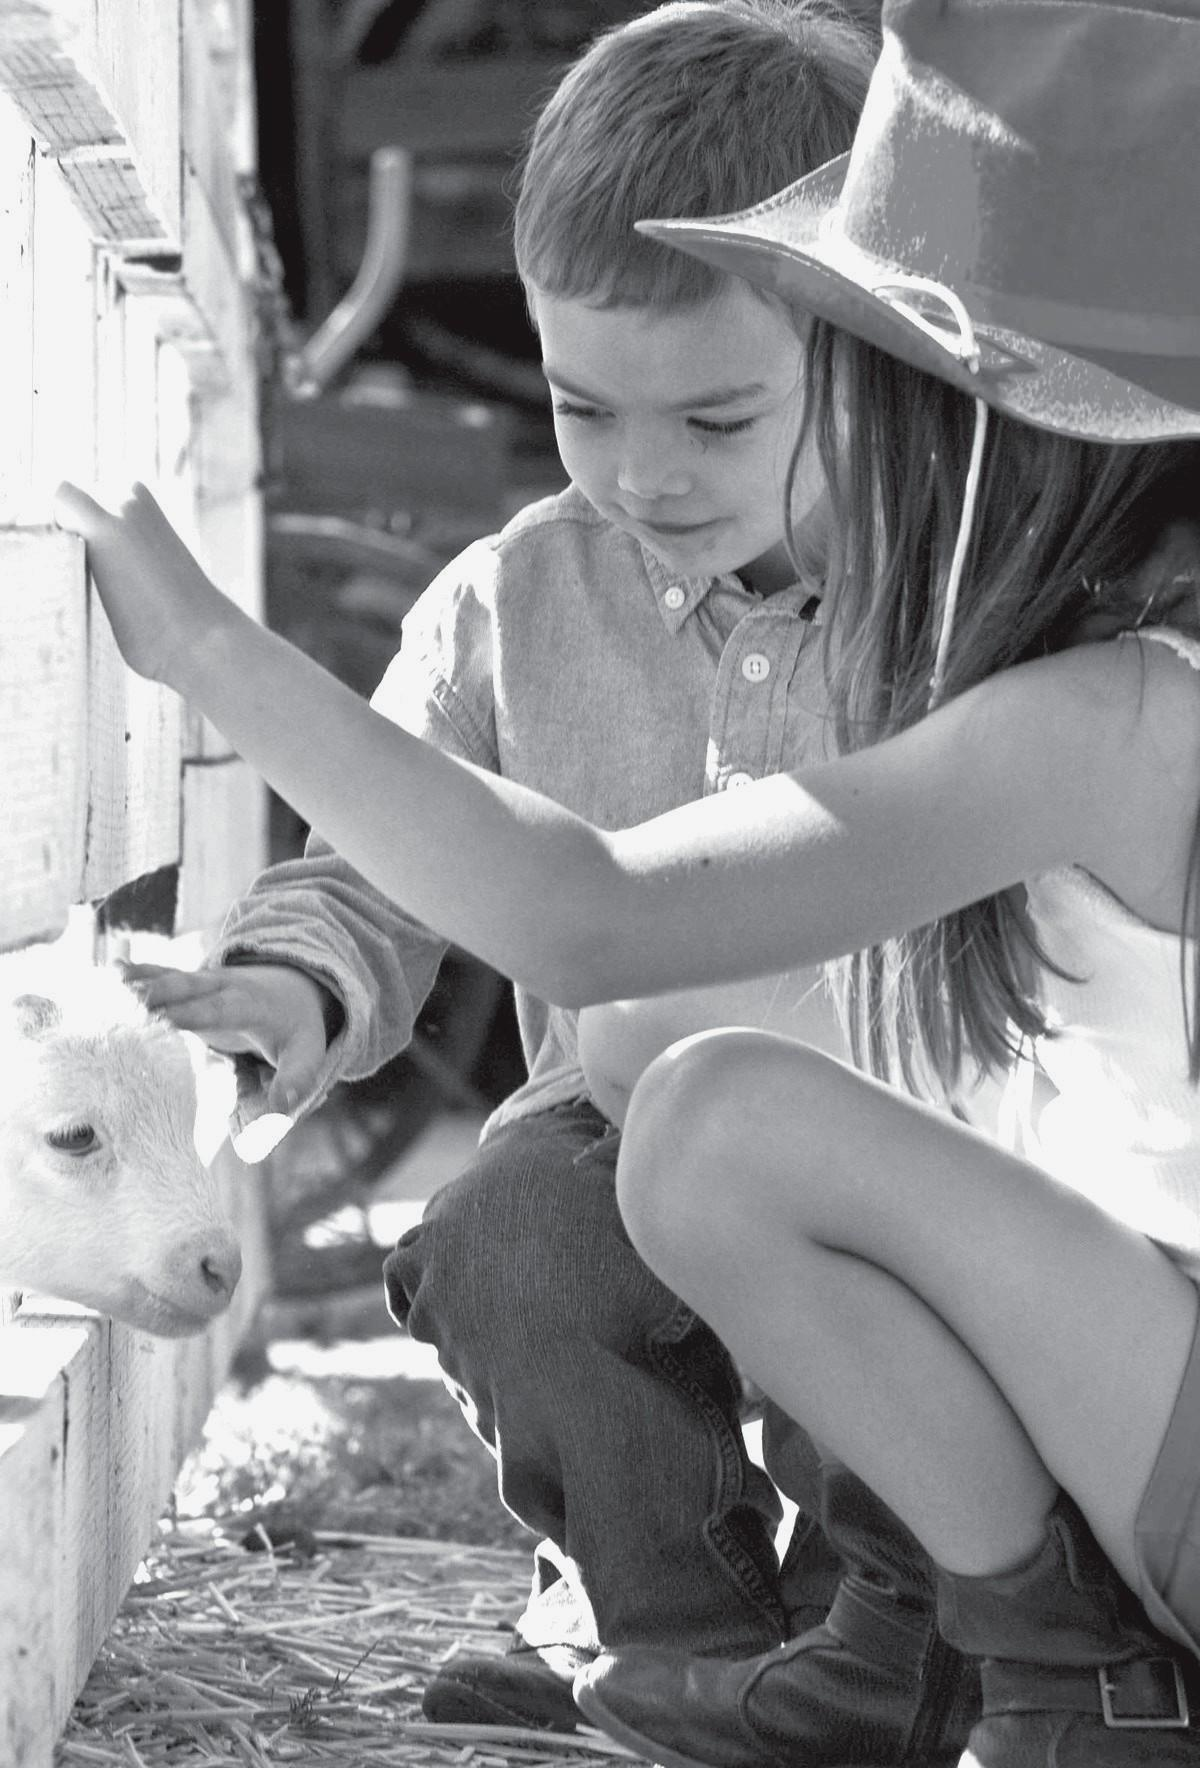 LIFE IN THE OLD WEST—Left, Riley Robinson, 5, of West Hills, and Madison Morgan, 8, of Woodland Hills get to know a baby lamb during the recent Old Town Western Barbecue at Leonis Adobe Museum in Calabasas. Above, Calabasas resident Andrea Bernholtz spends time with her 6-week old daughter, Barrett.